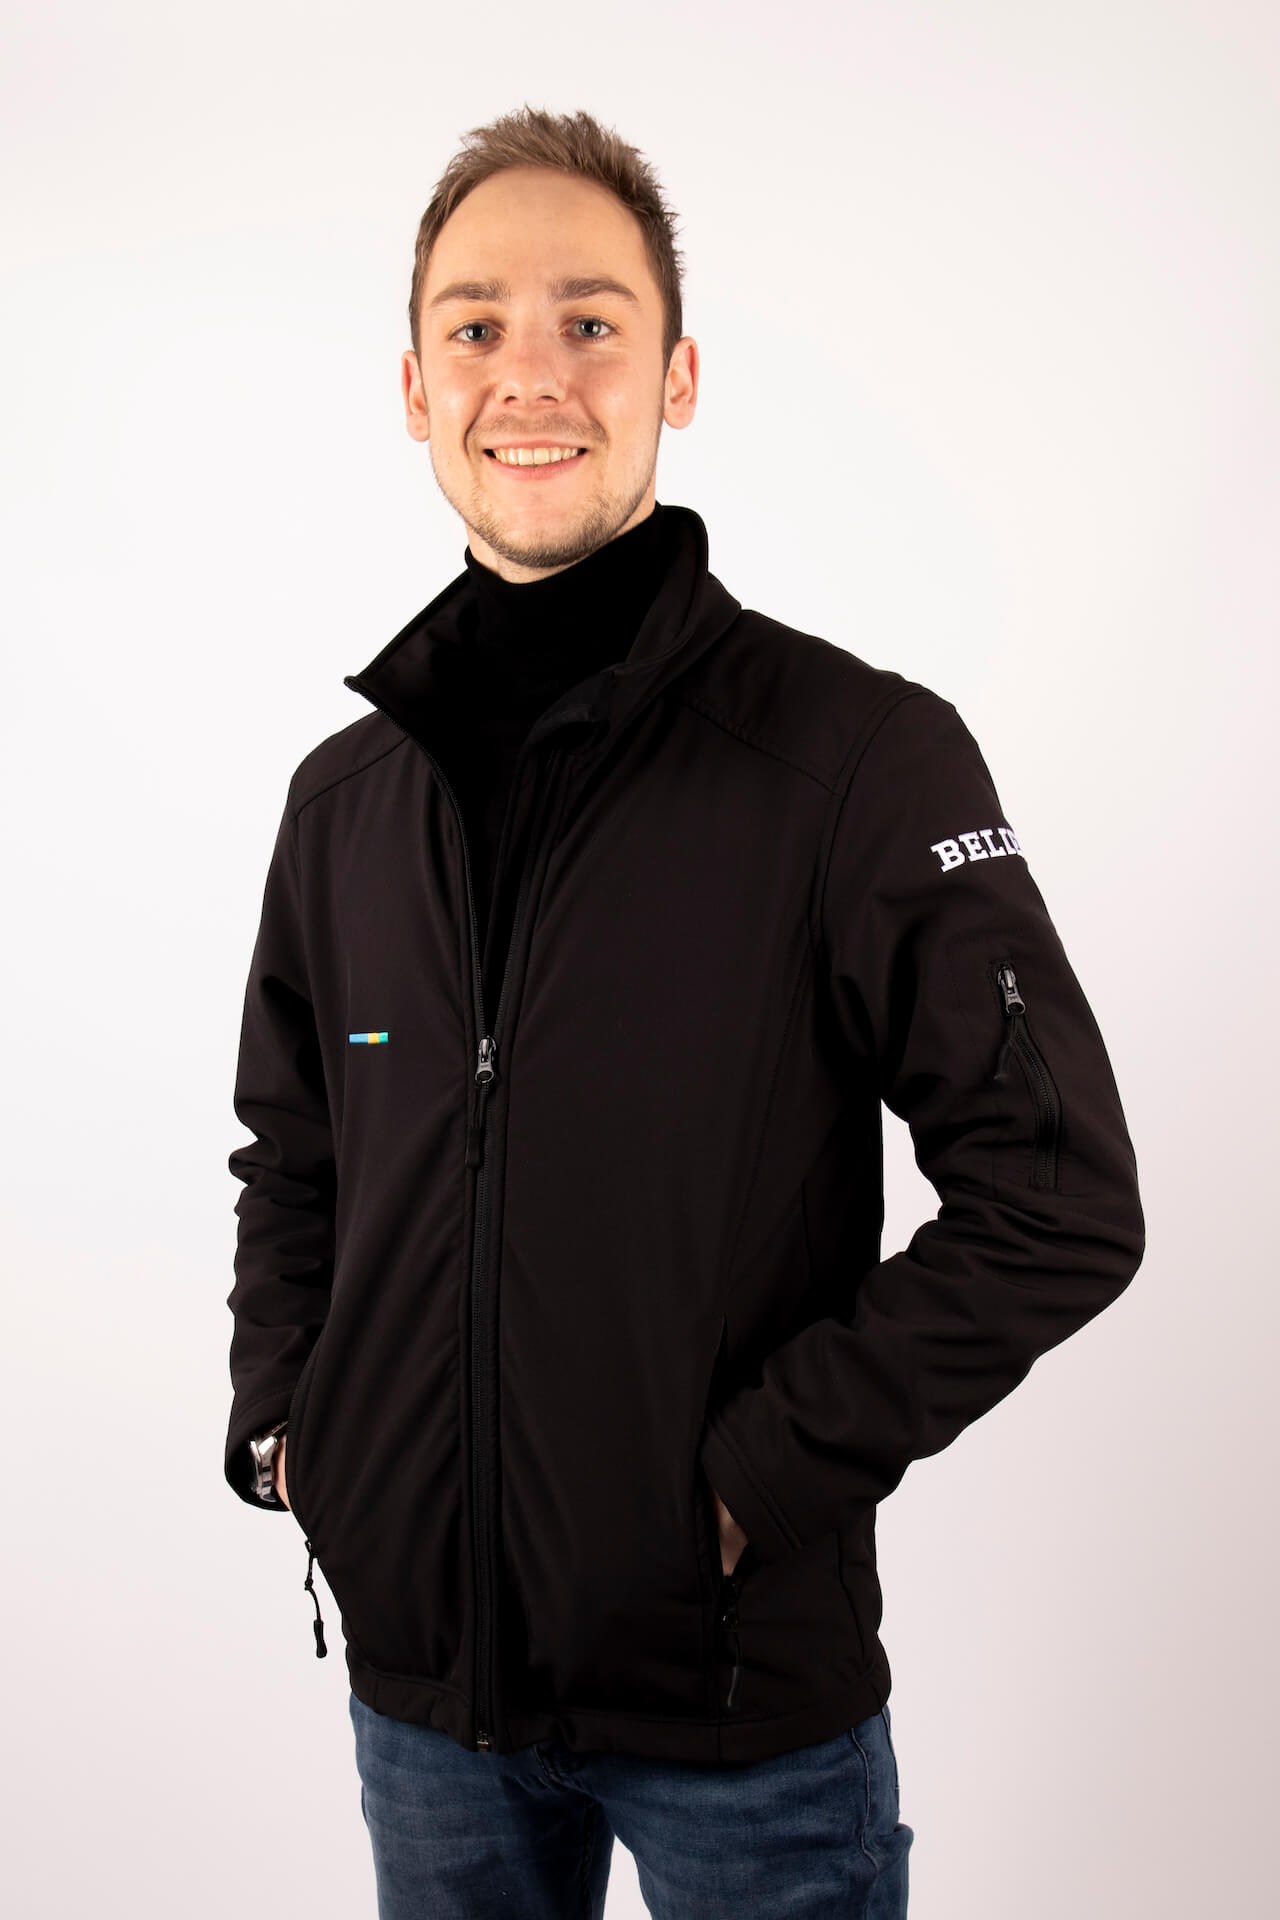 Softshell jacket - Belieff